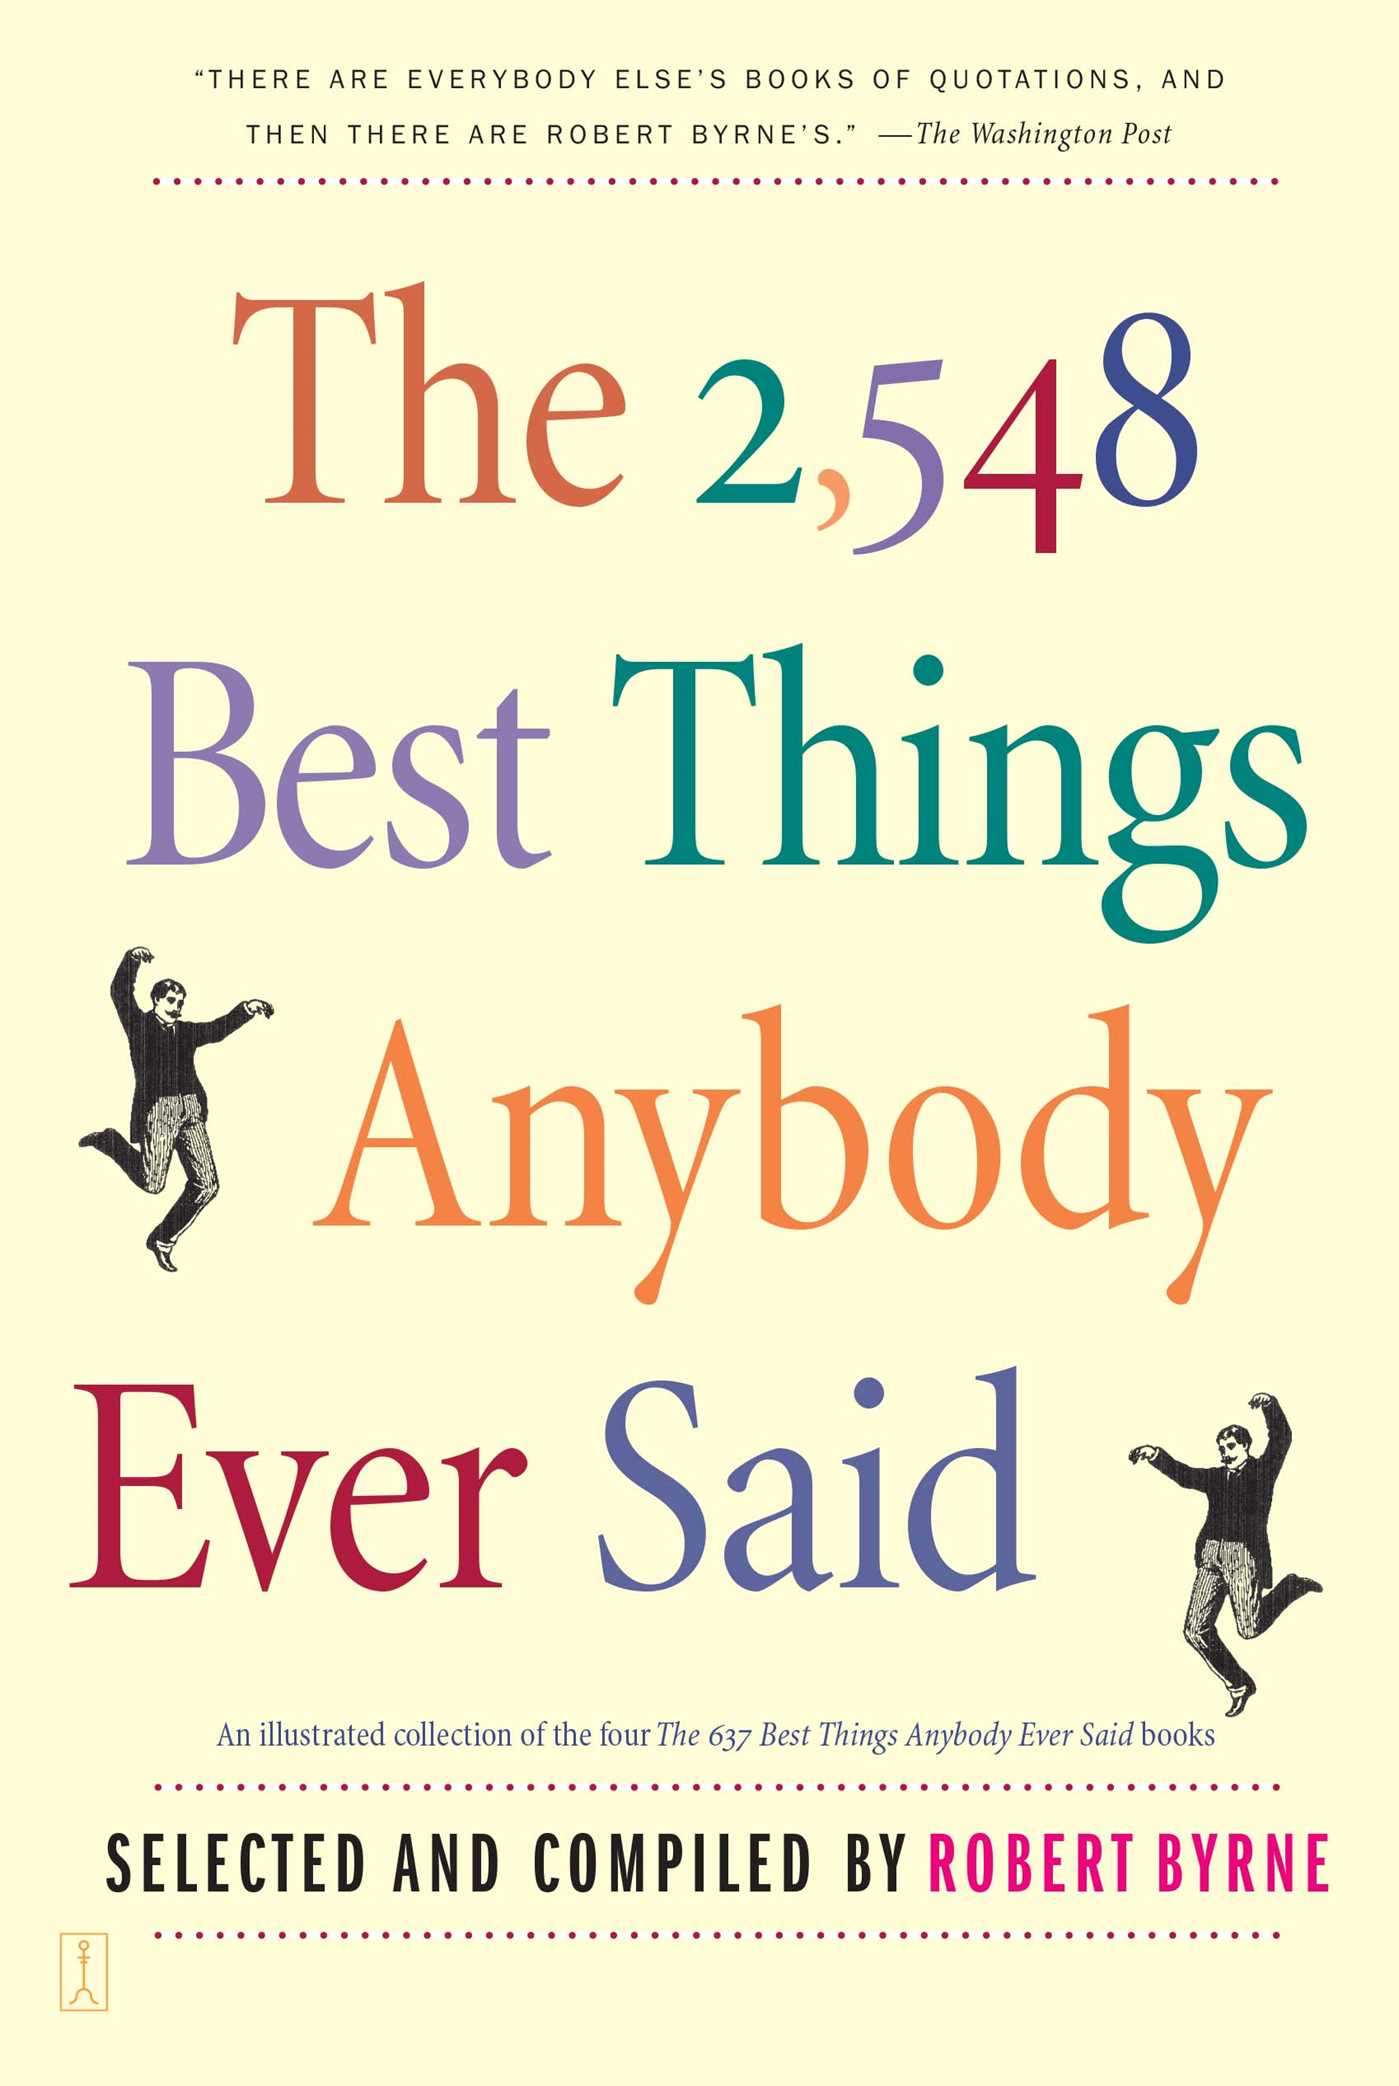 Book Cover Image (jpg): The 2,548 Best Things Anybody Ever Said